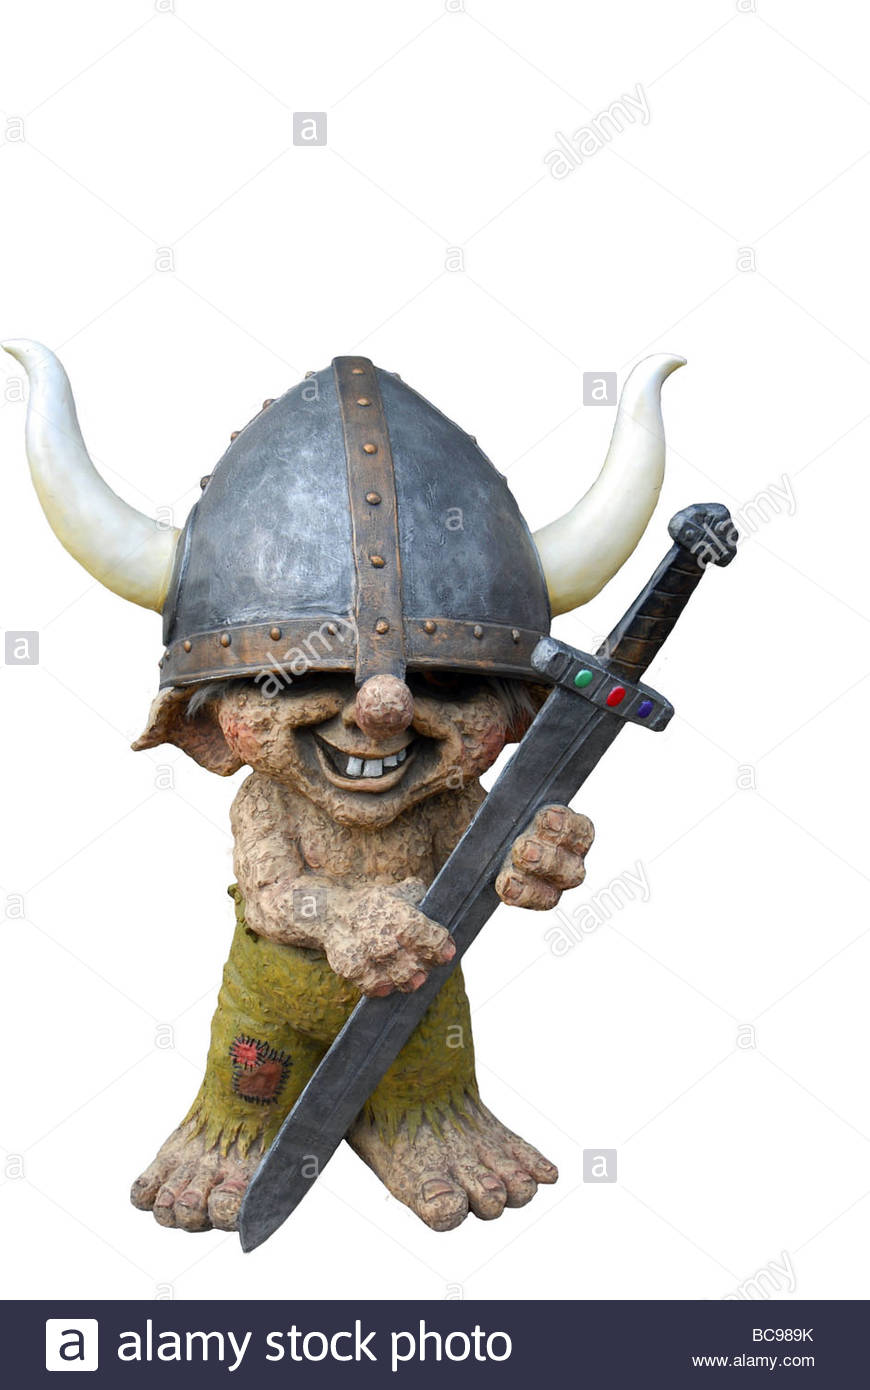 Troll Stock Photos & Troll Stock Images - Alamy